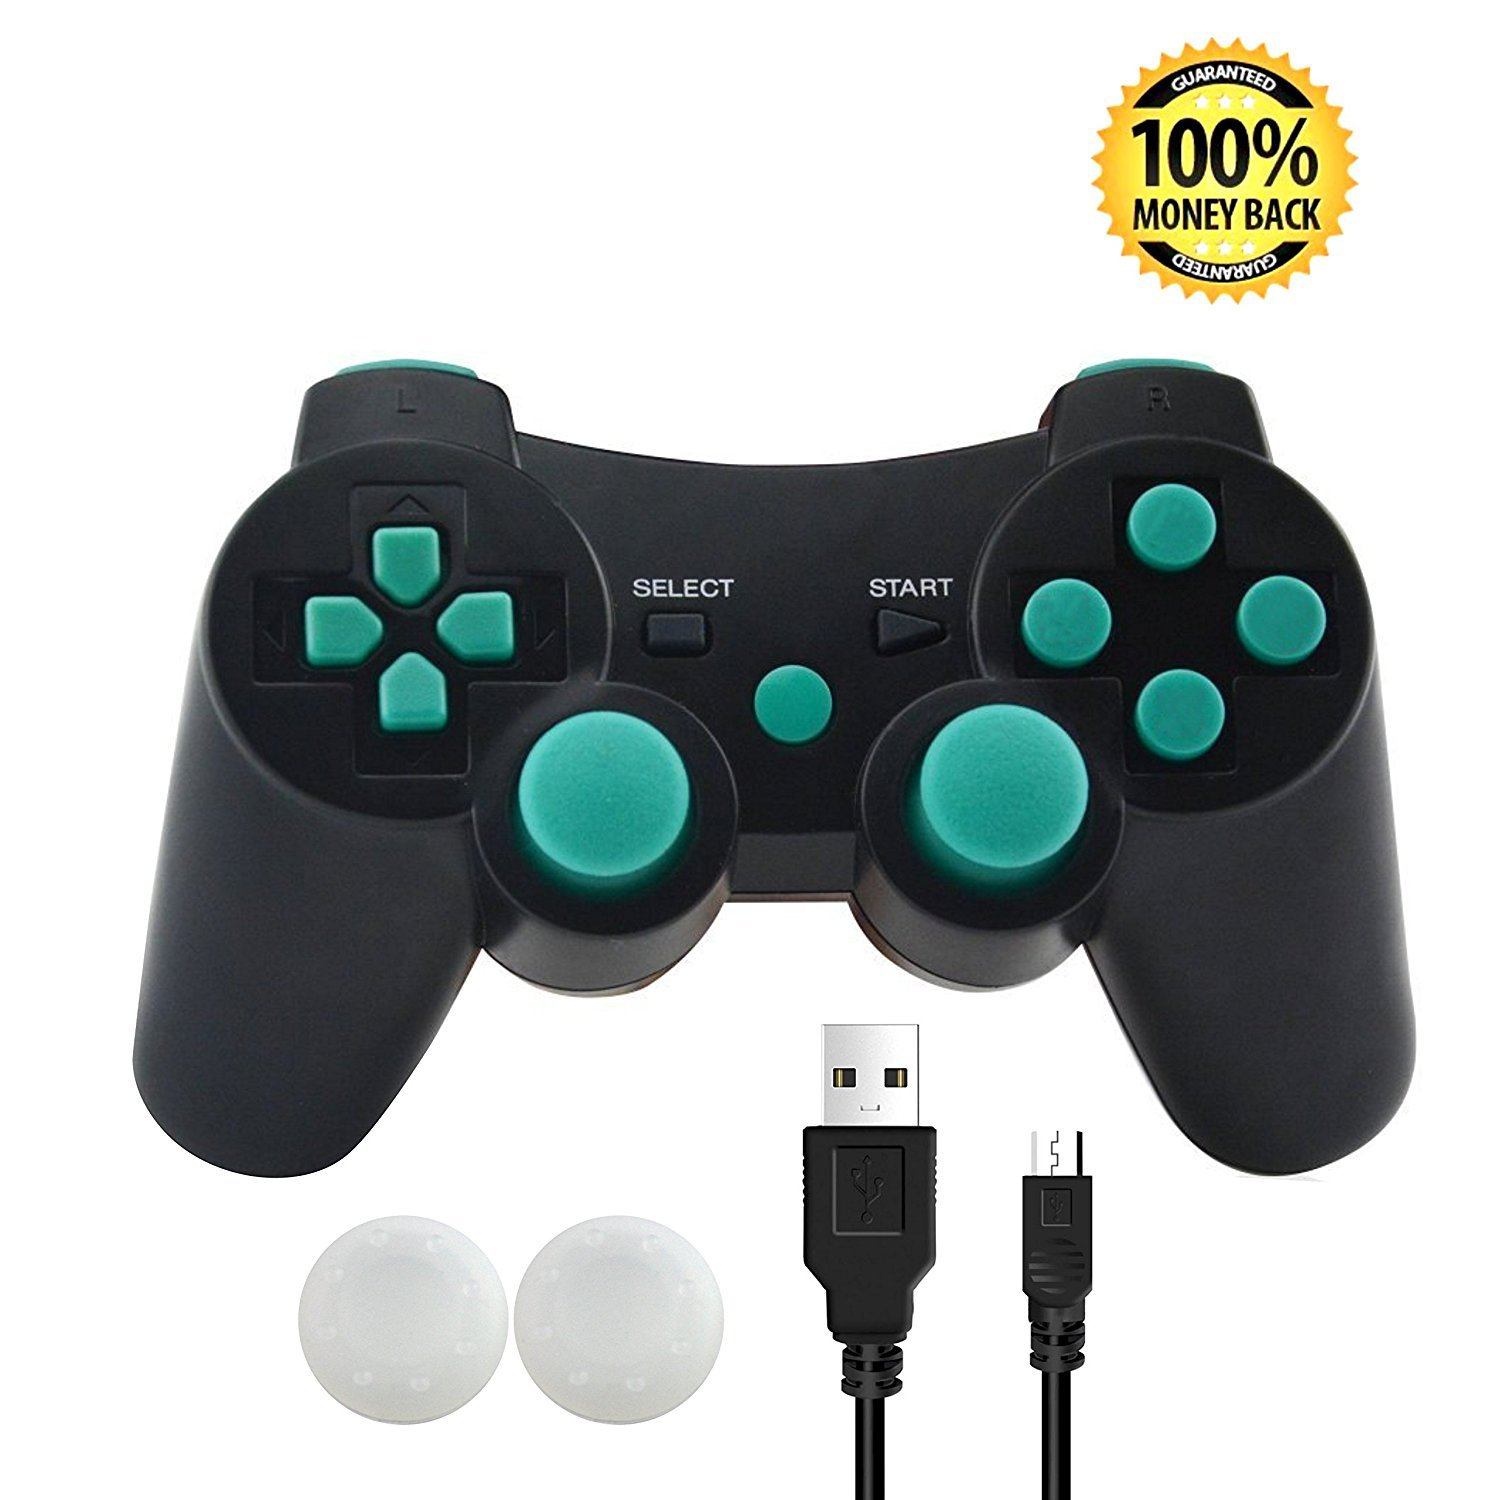 PS3 Controller, SKILEEN Wireless Bluetooth Double Vibration Game Remote Control Joystick Multi-Media Game Joypad for  PS3 with Charger Cable (Blue)